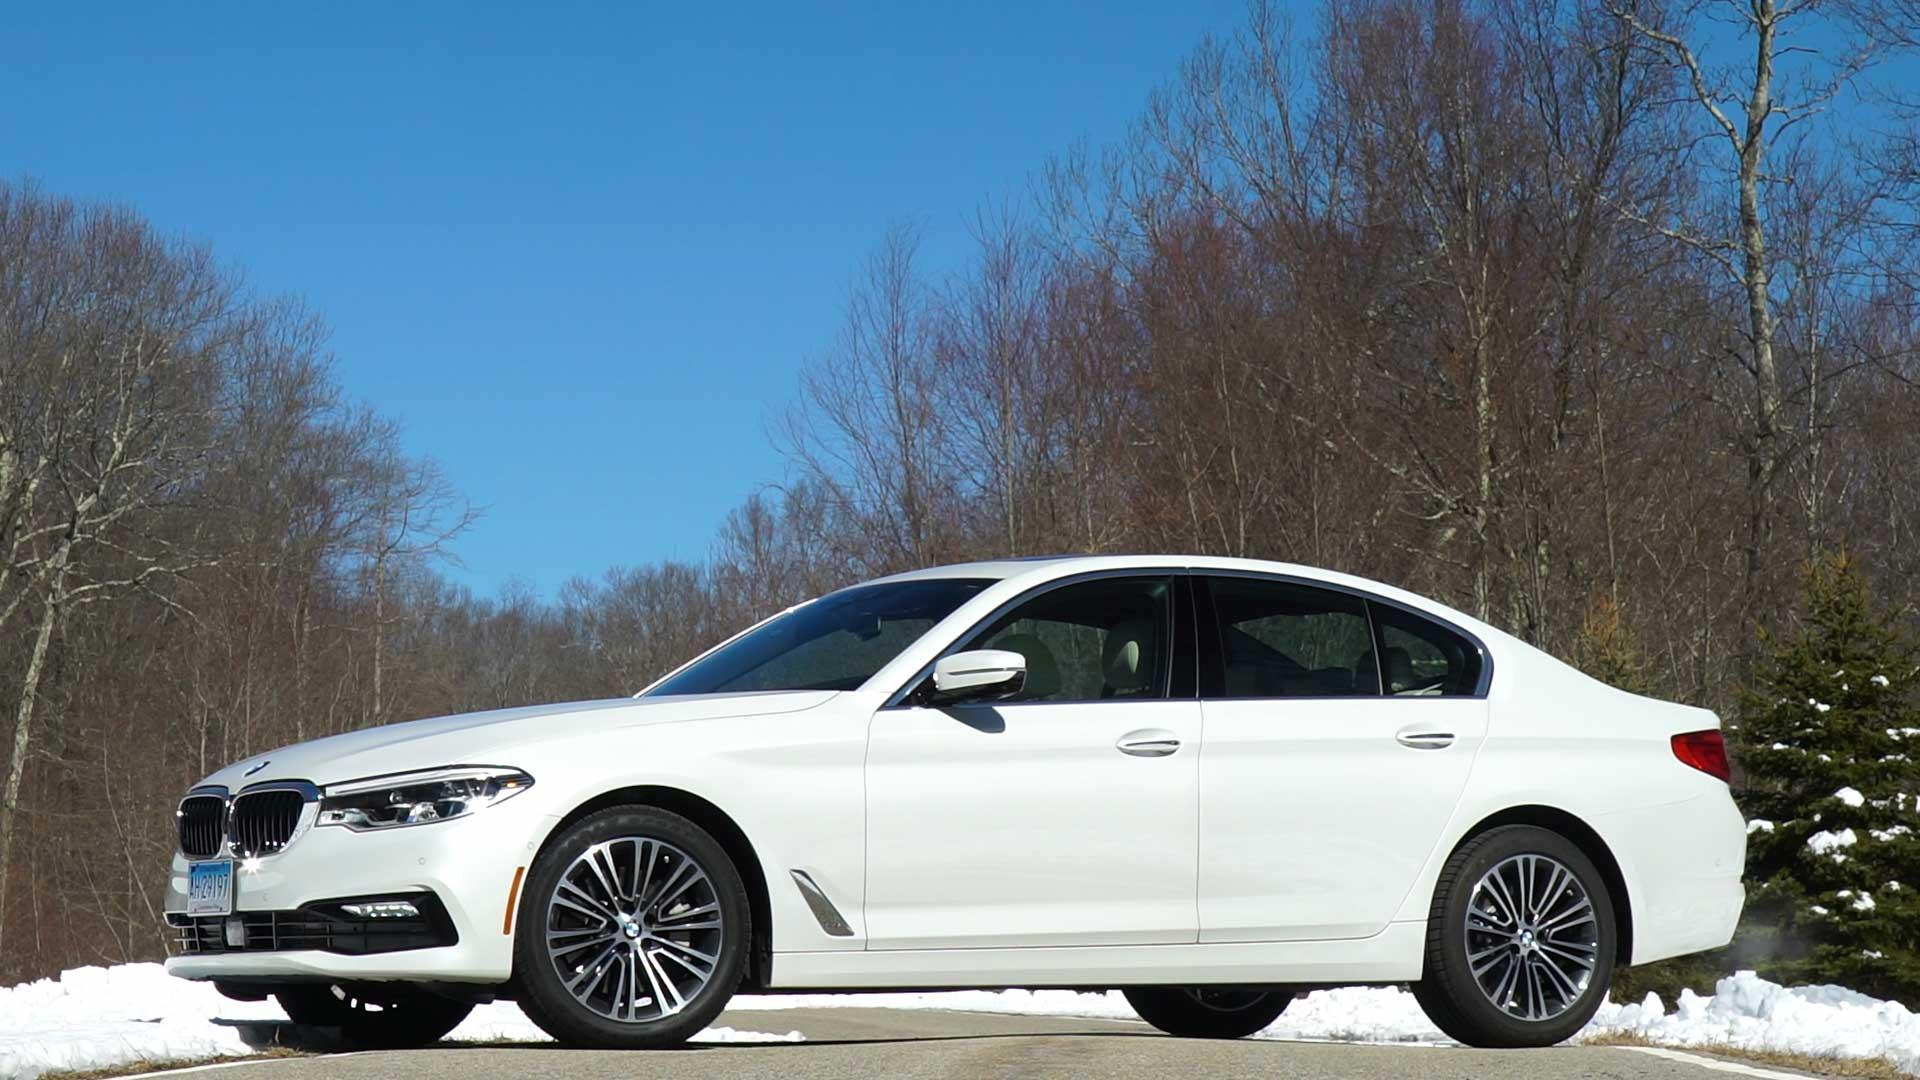 BMW 5 Series: Car care products